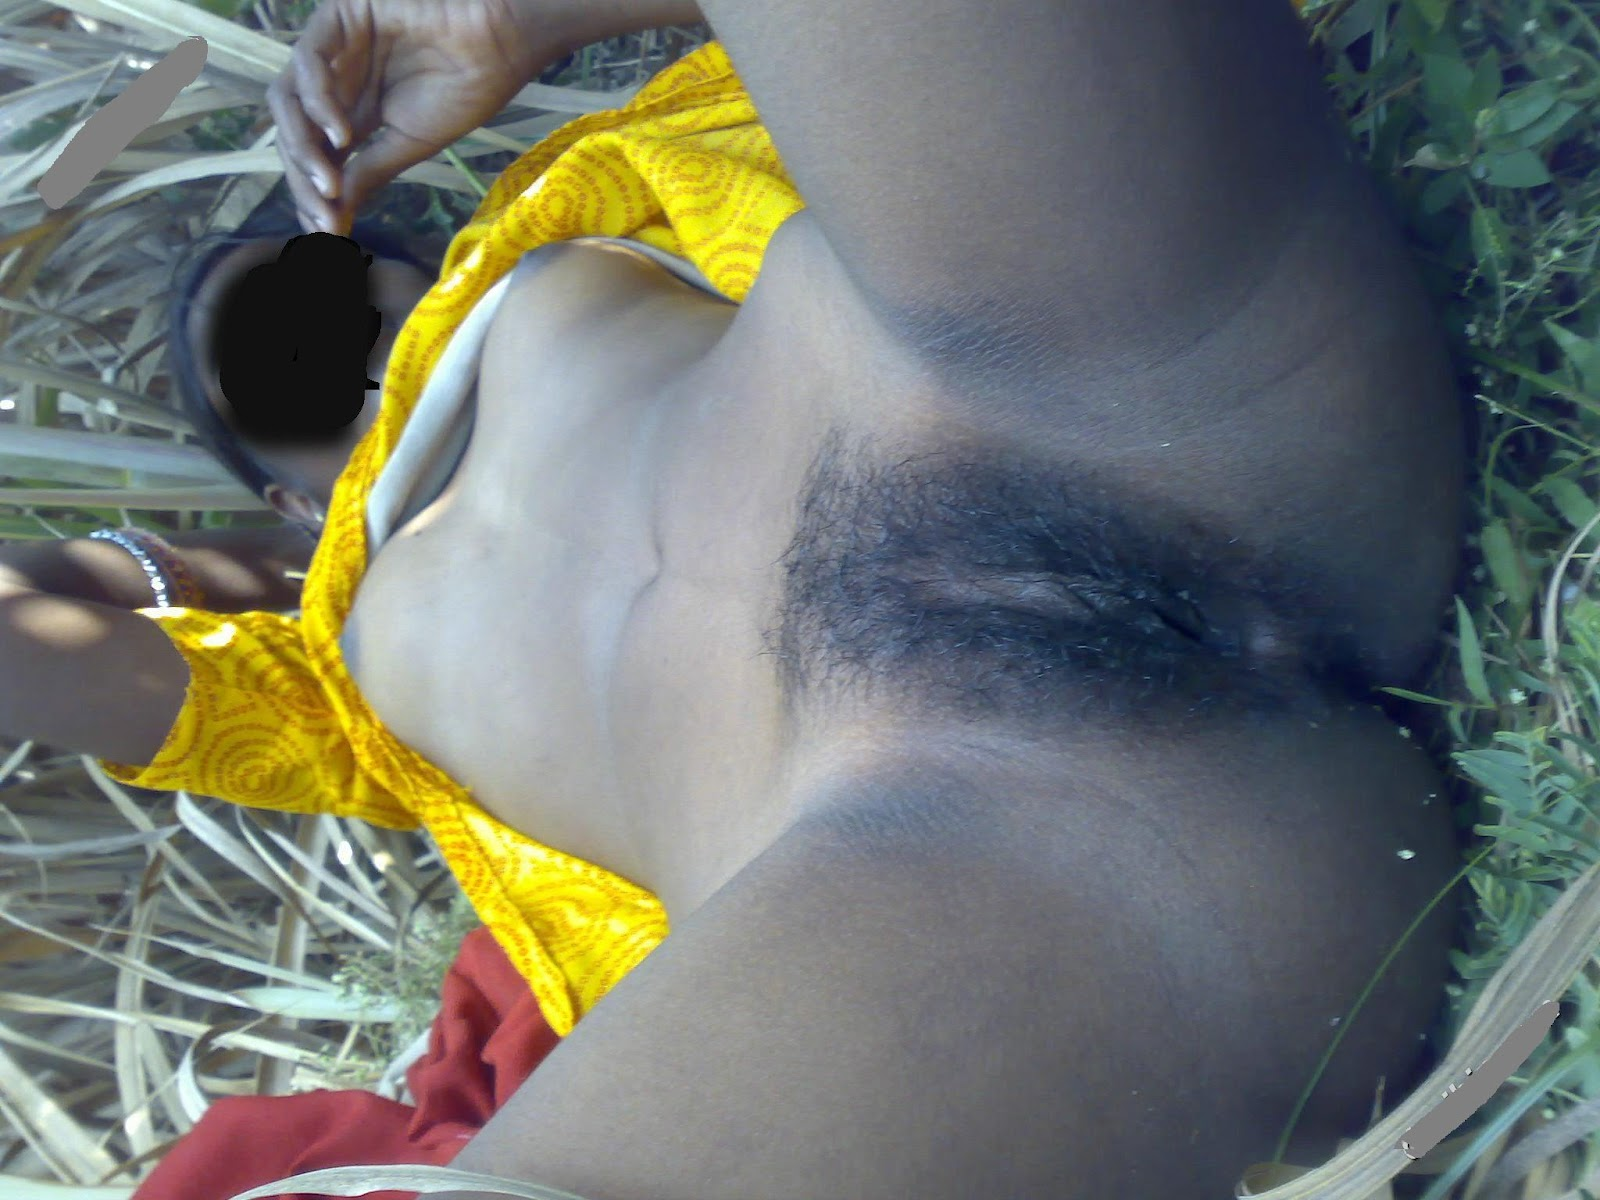 from Rodney village small girl nude